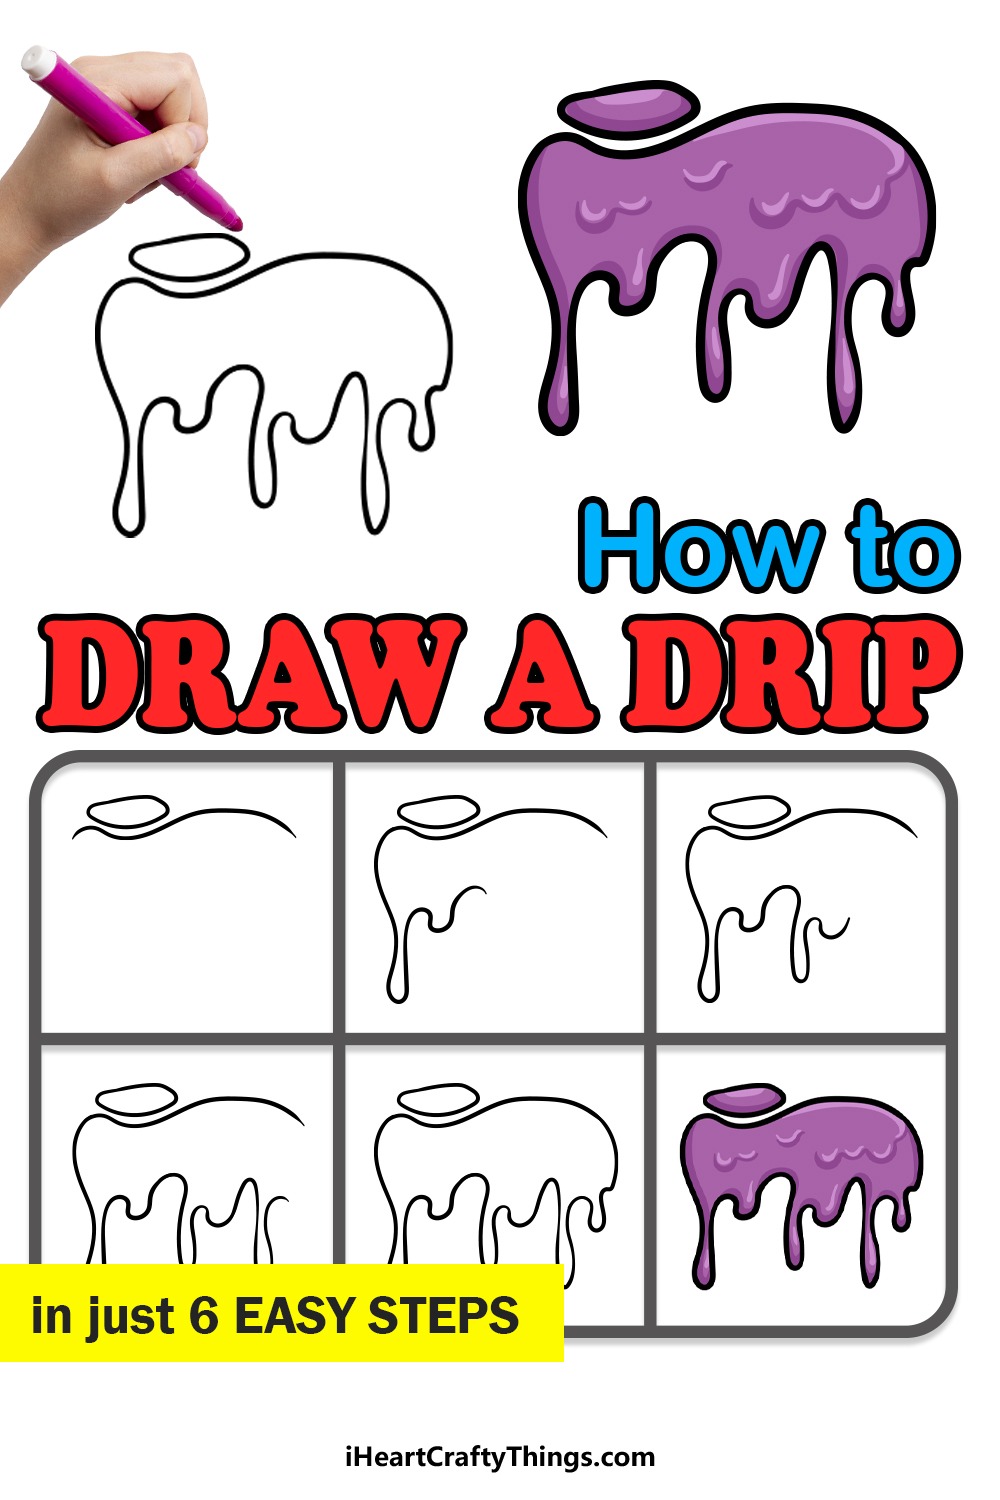 how to draw a drip in 6 easy steps